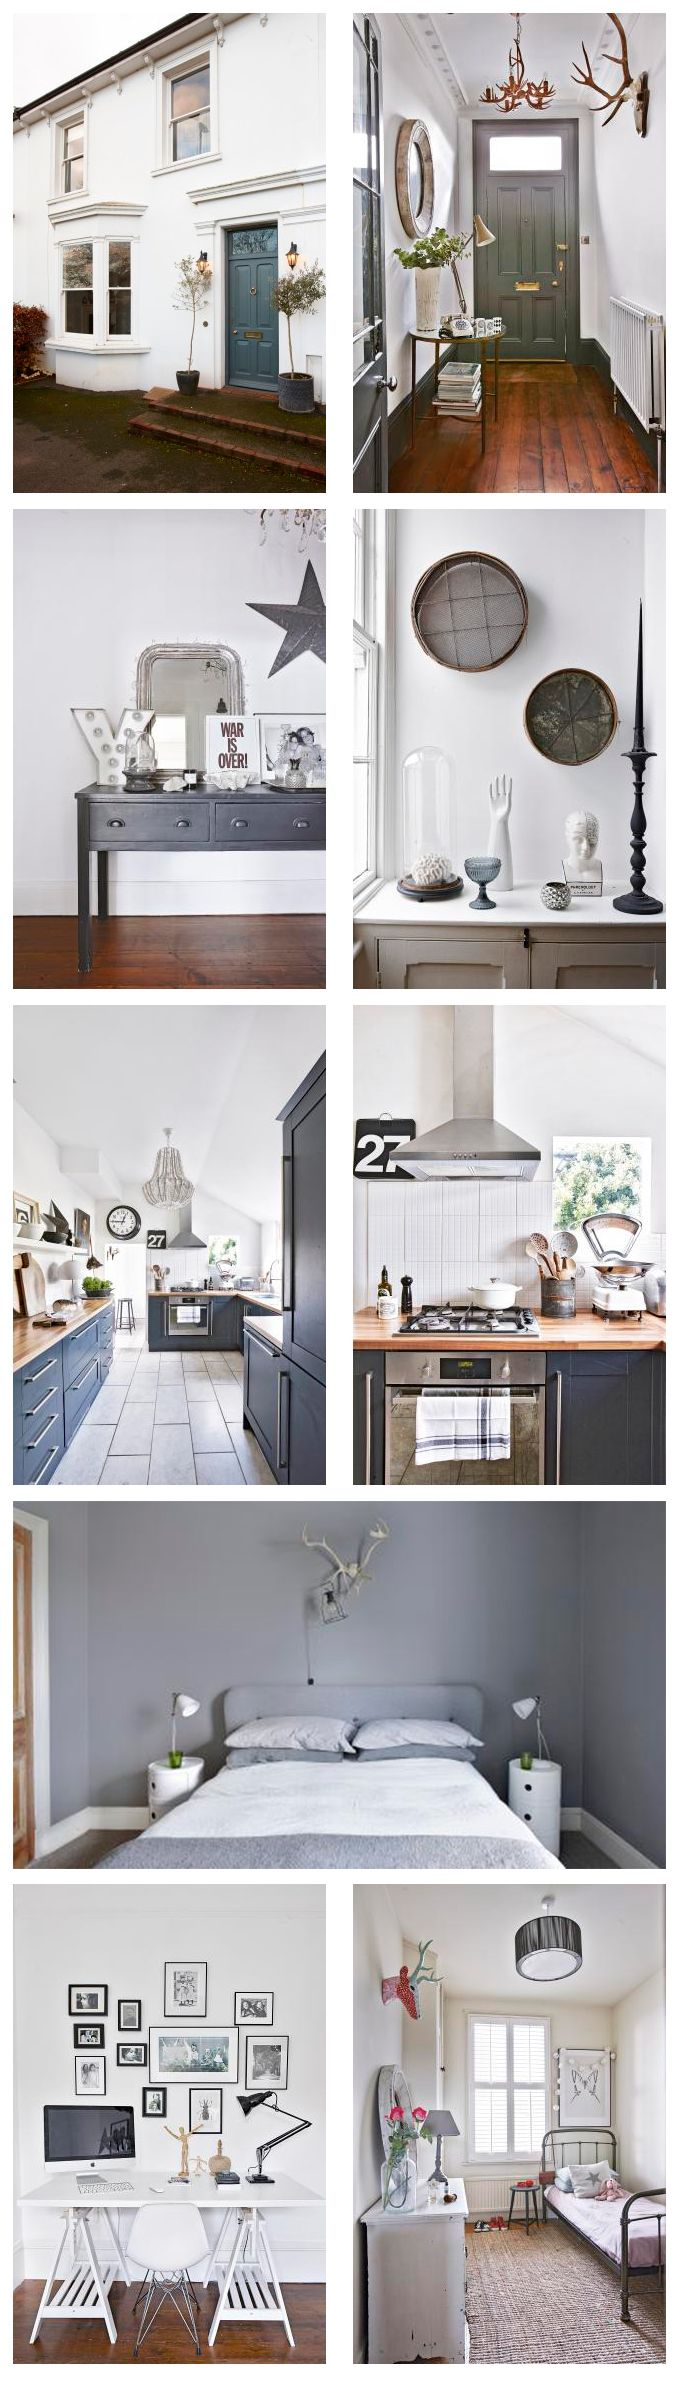 This elegant semi-detached period house in Sussex has been given a new lease of life with a modern update in monochrome. Want to see the rest of this gorgeous house? Take the tour!